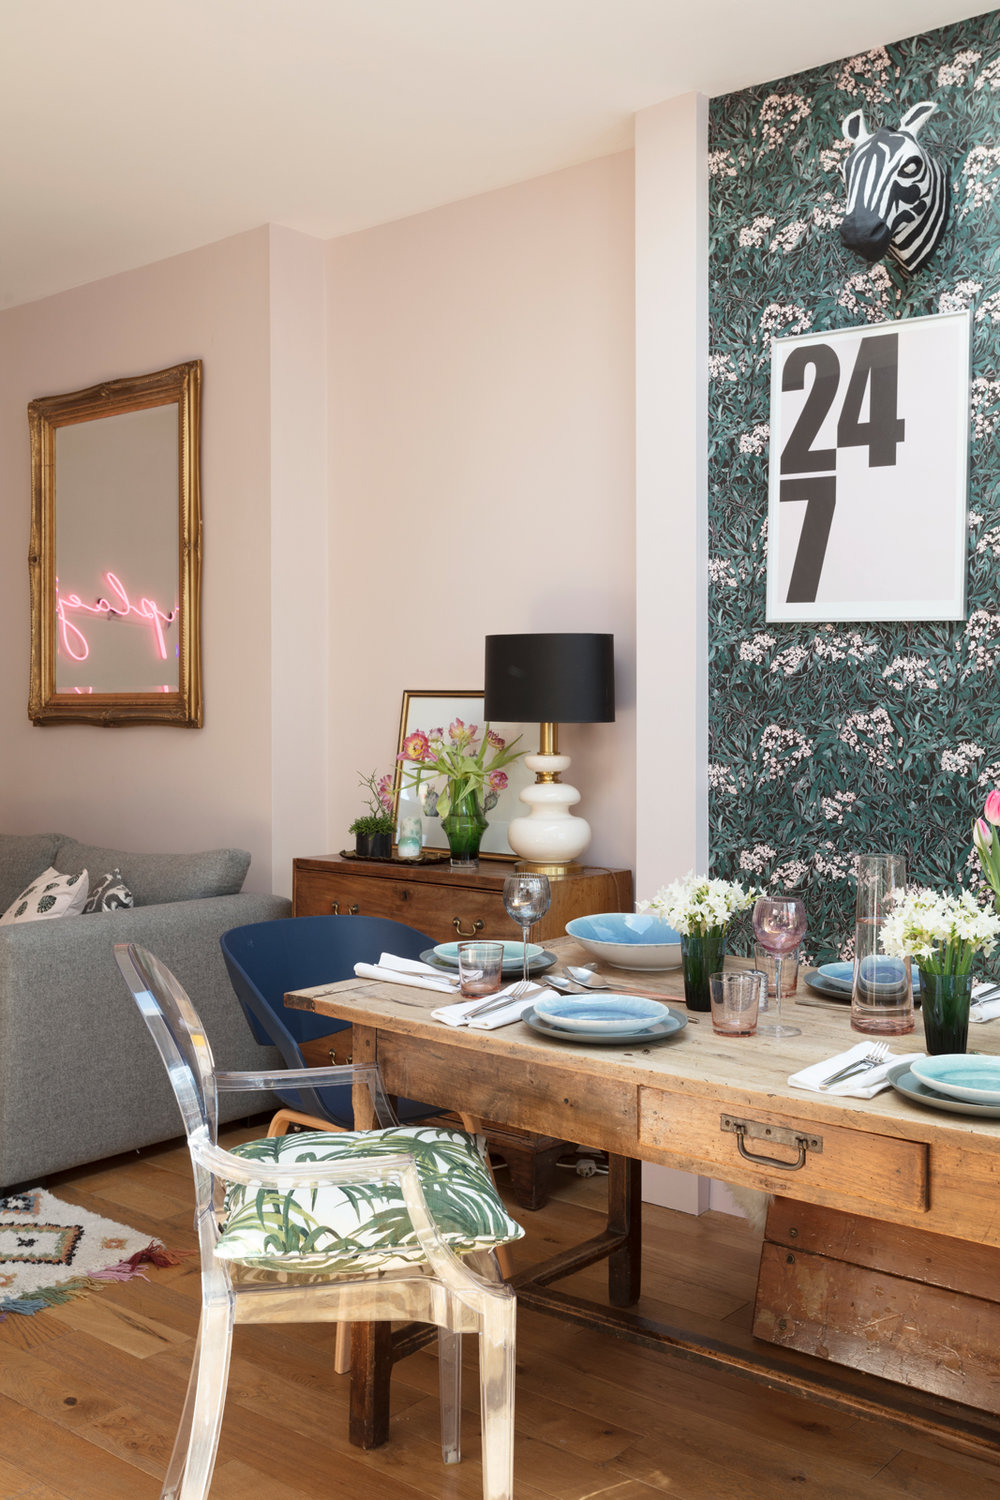 vintage dining table and pink neon sign in the dining room